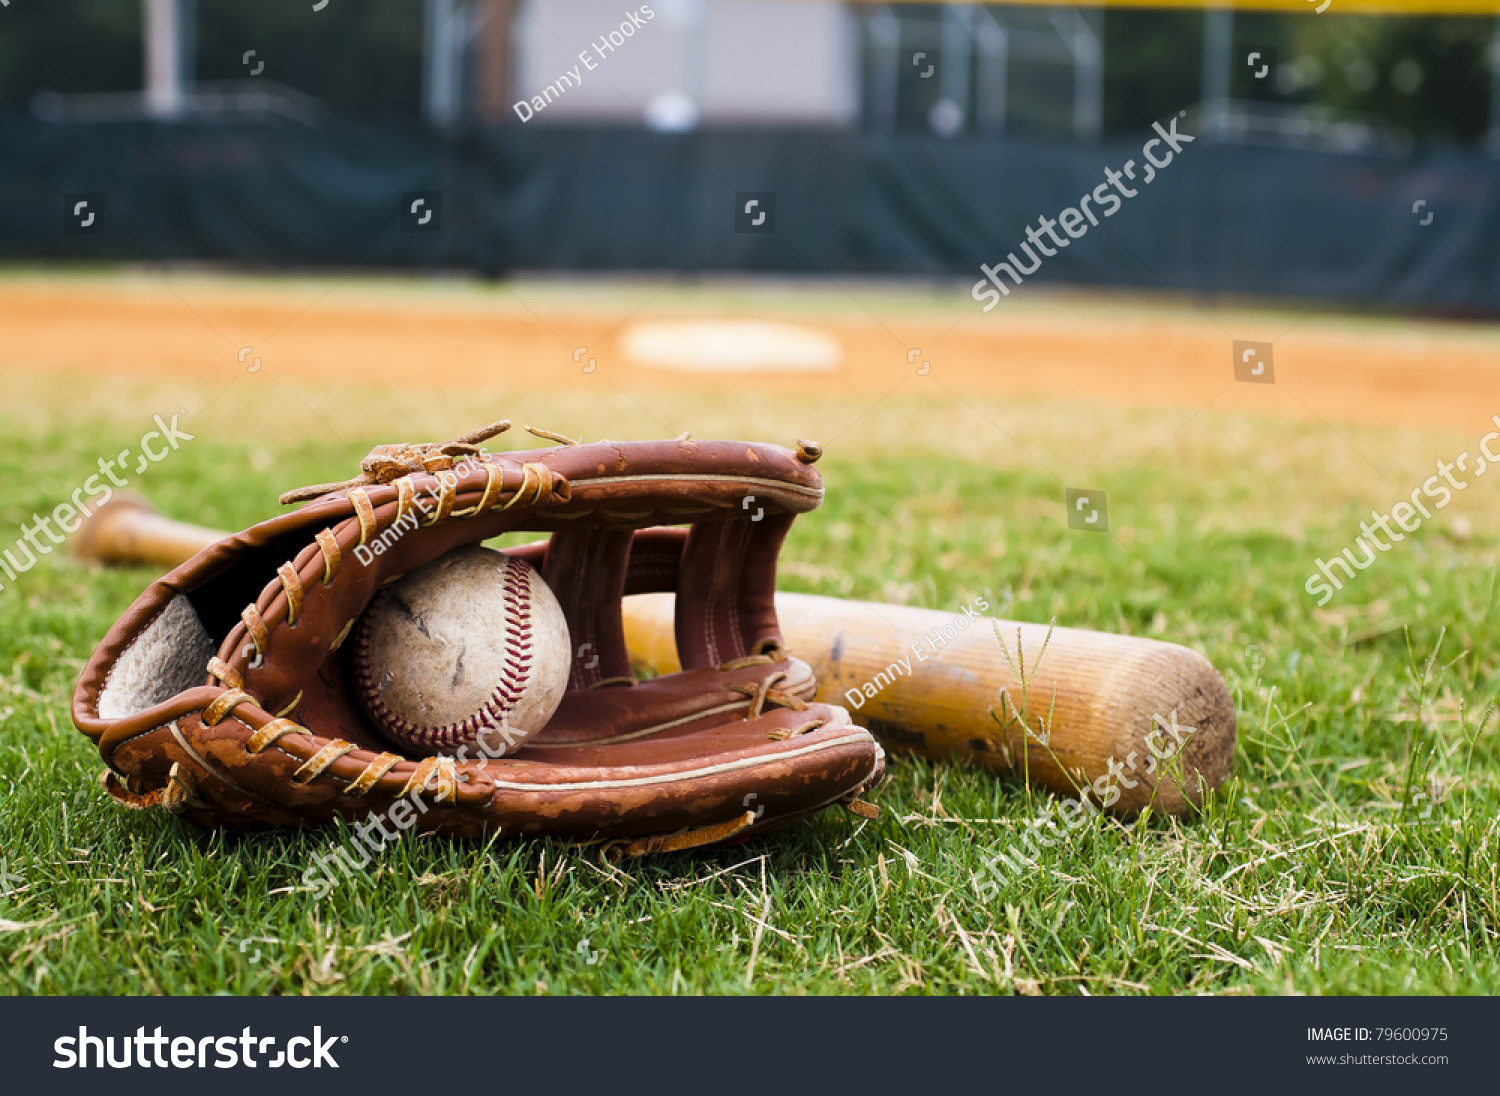 Old baseball, glove, and bat on field with base and outfield in background. #79600975